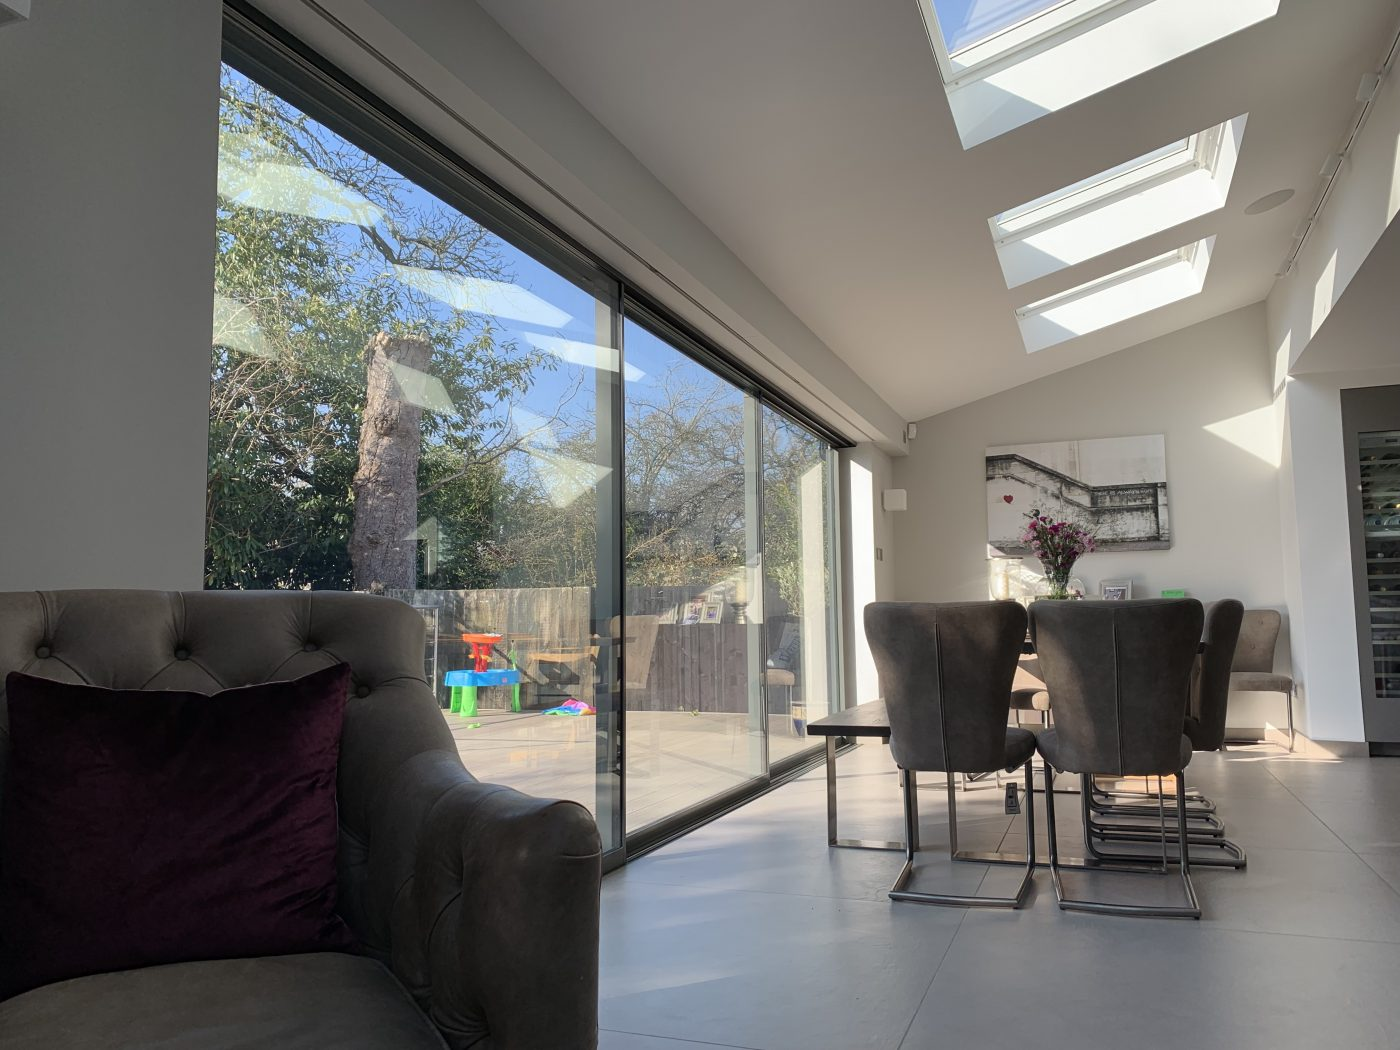 Electric Blinds For Sliding Doors - The Electric Blind Company